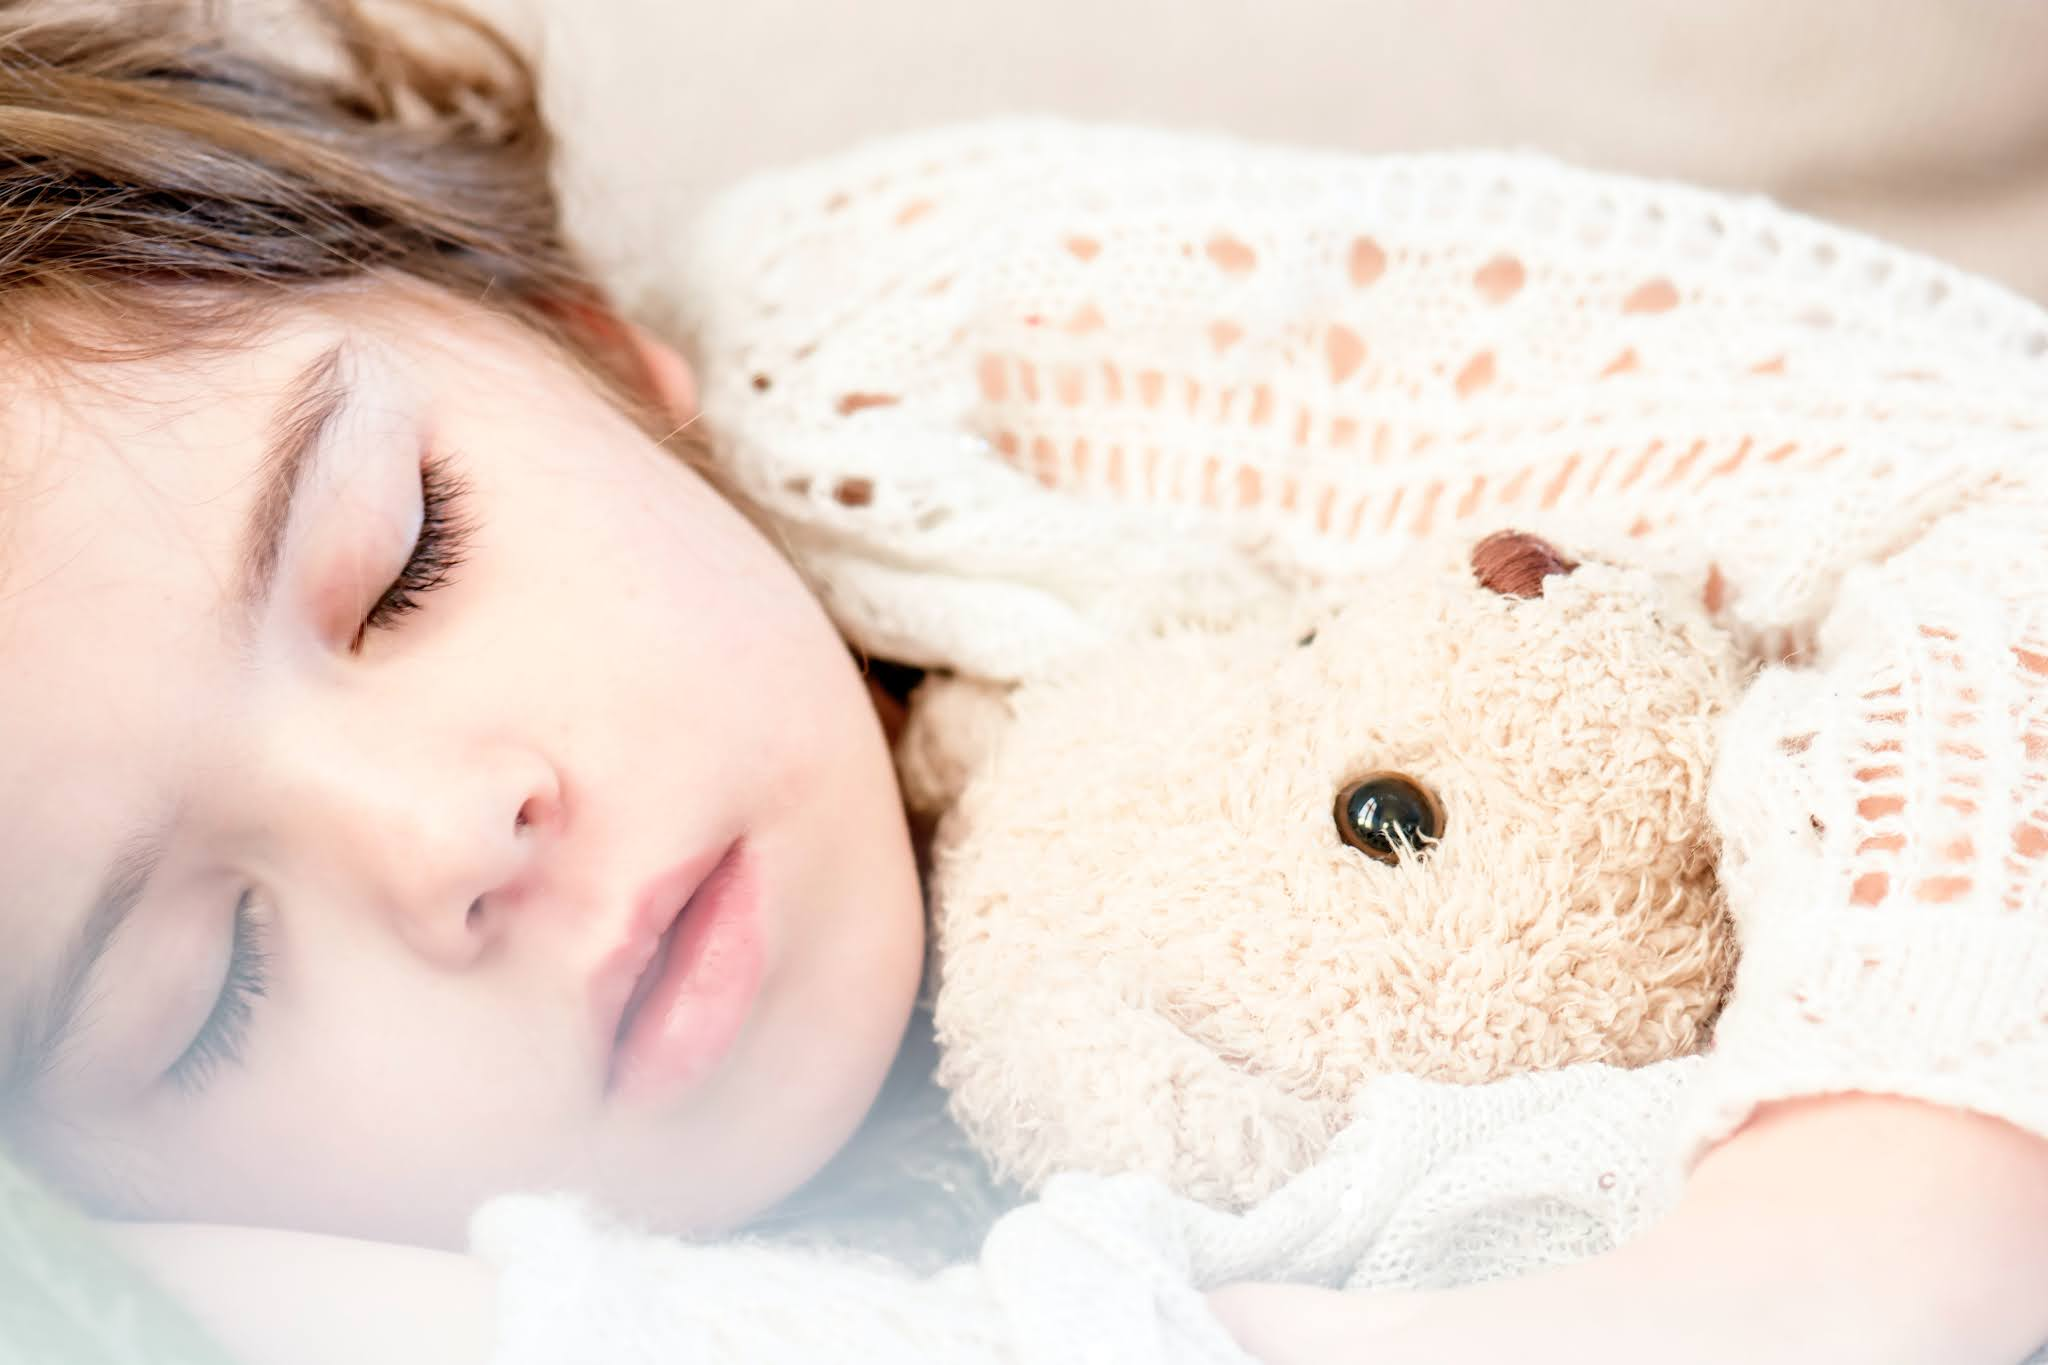 3 Ways To Help A Child That Has Trouble Sleeping